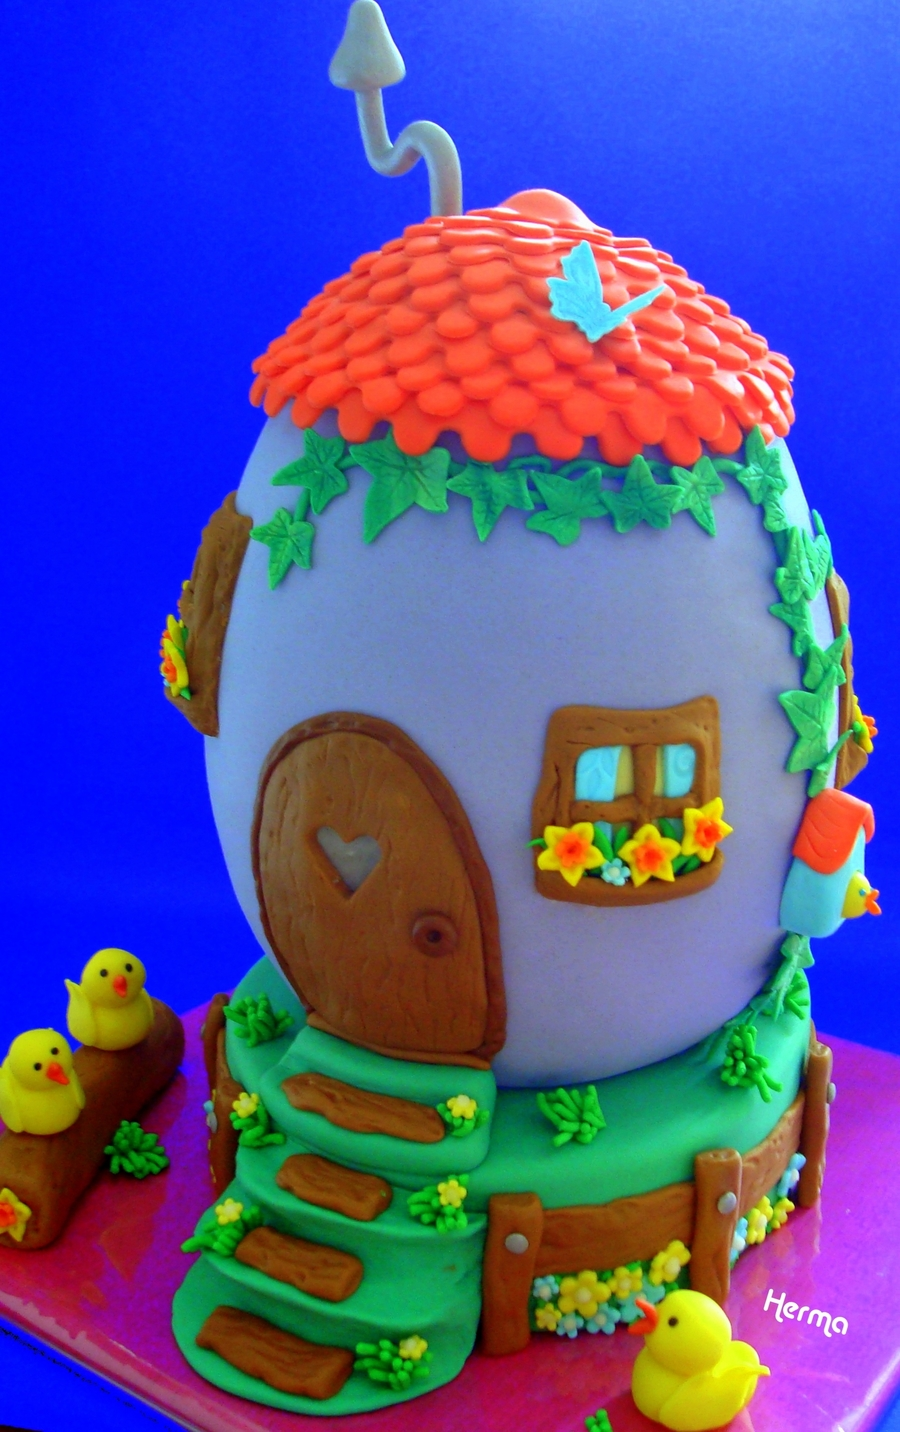 Tuscan 3D Cake Egg House With Chicks - CakeCentral com